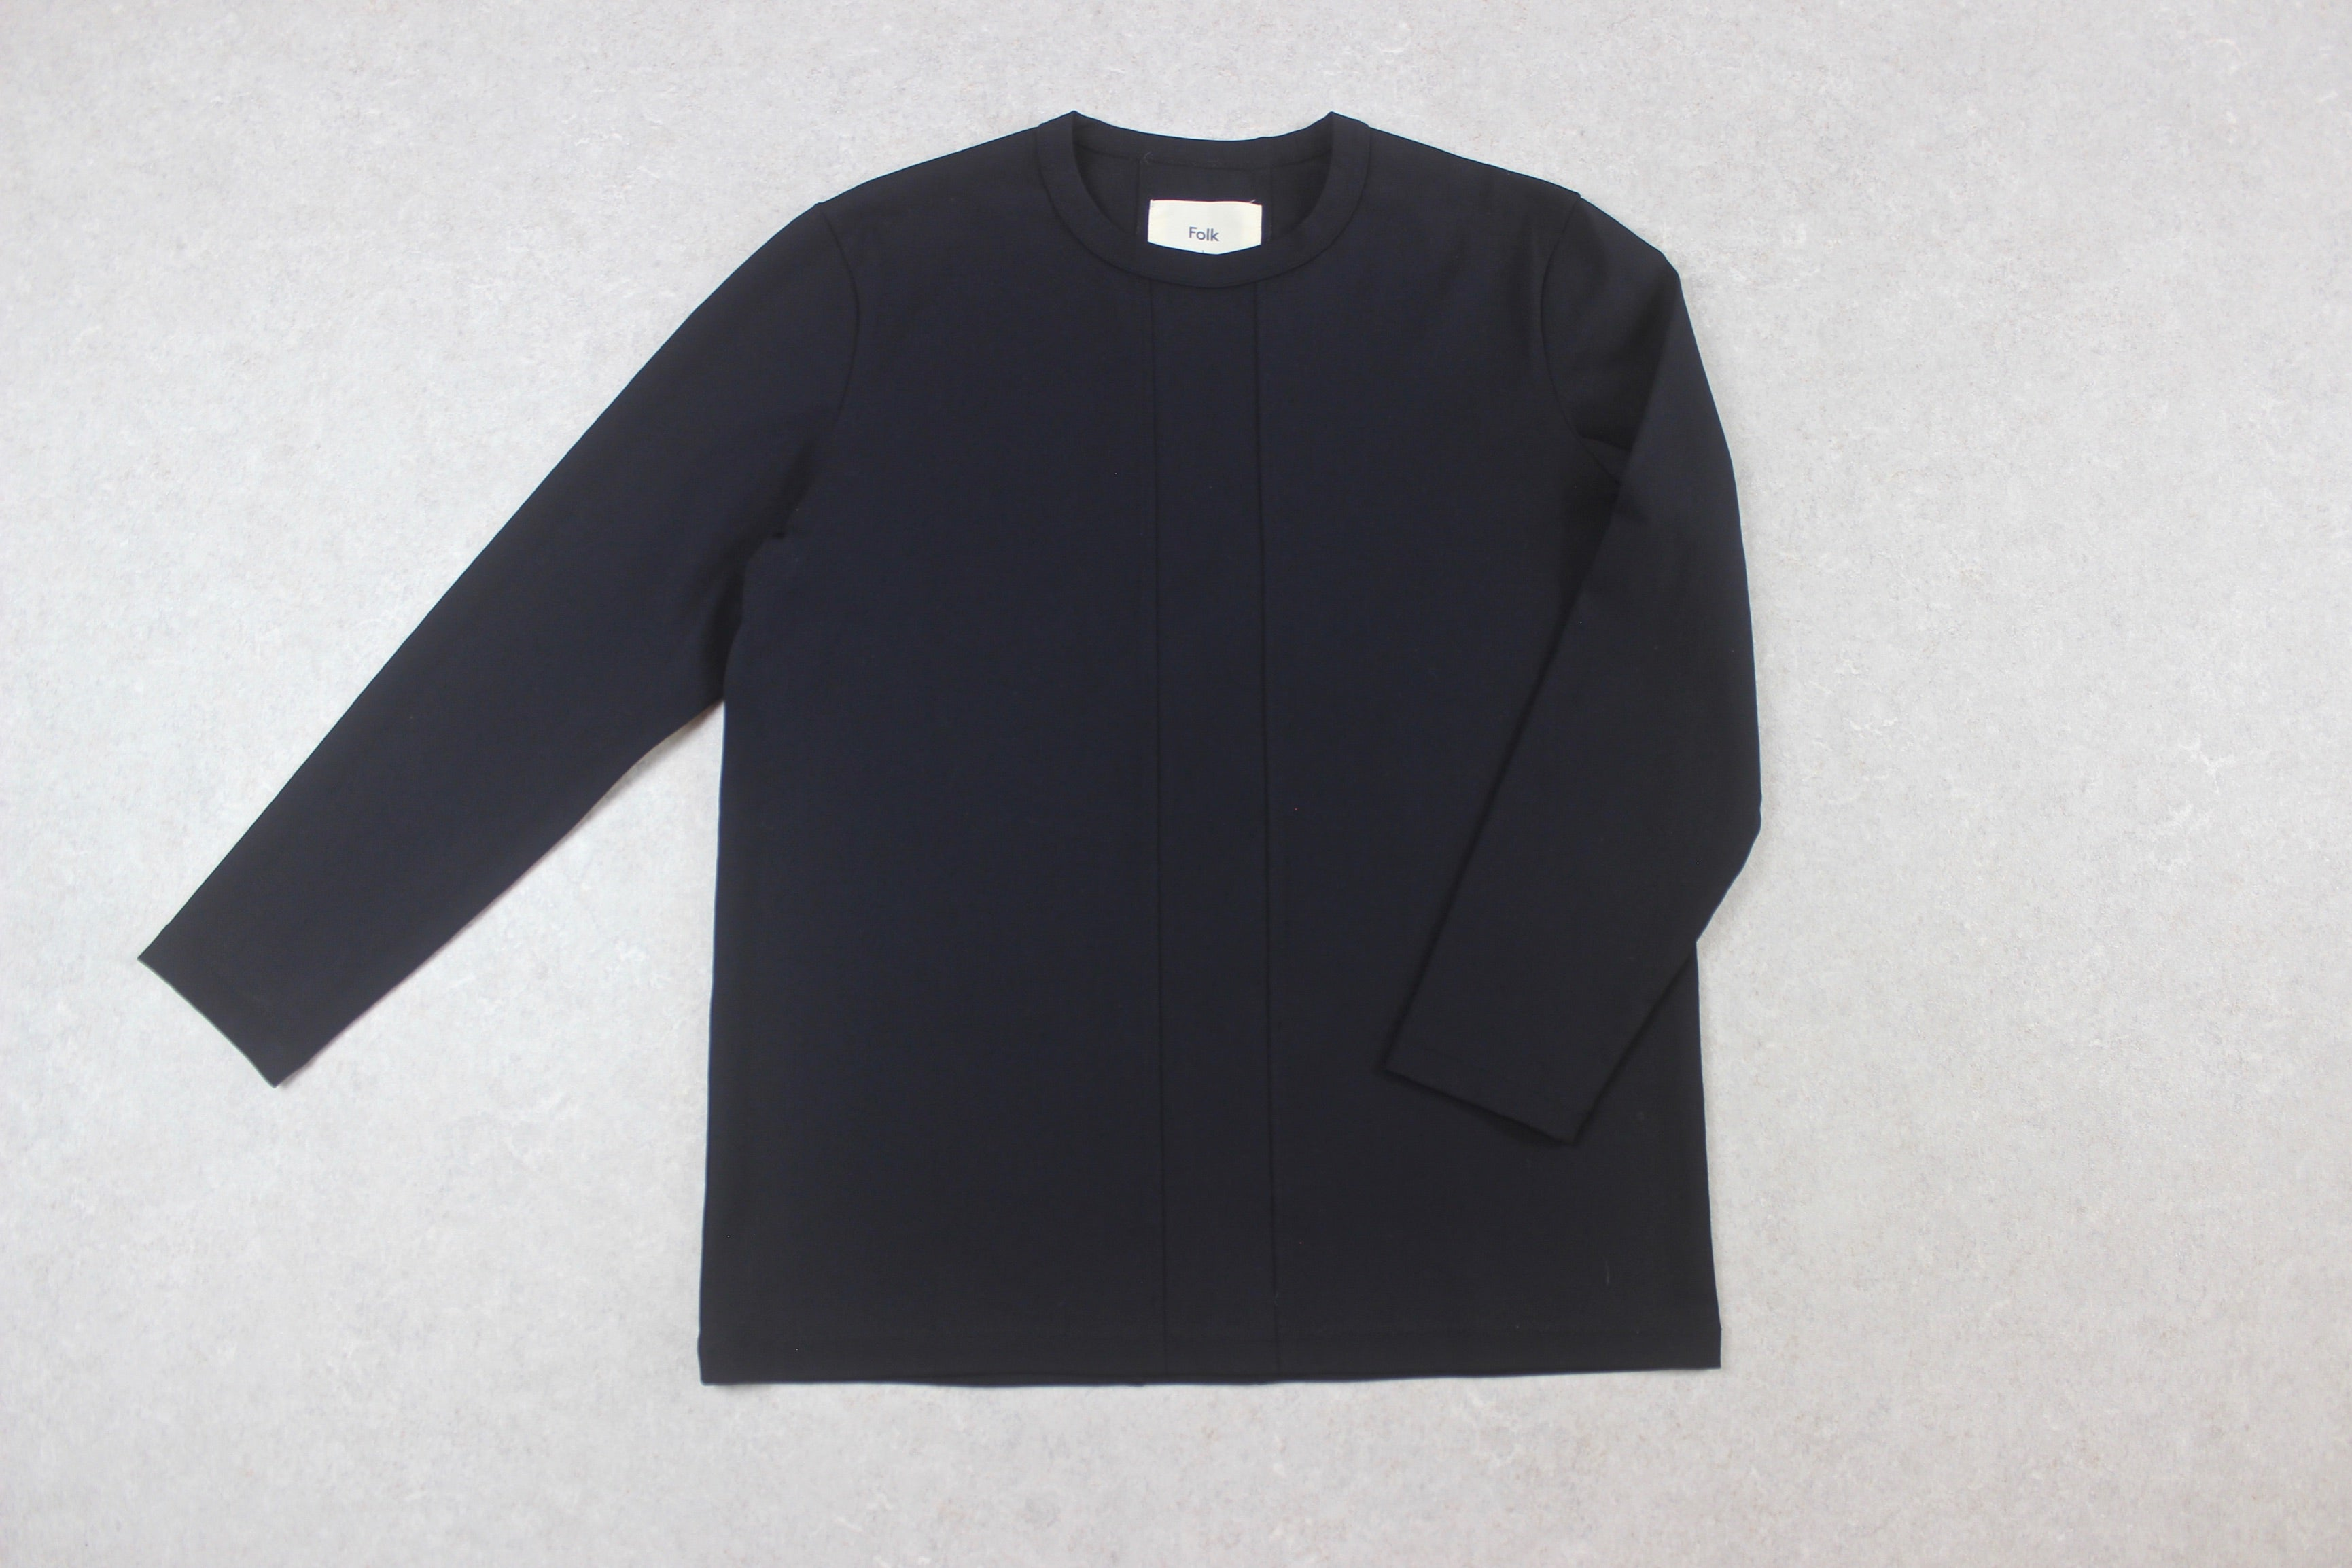 Folk - Nylon Jumper - Black - 1/Extra Small